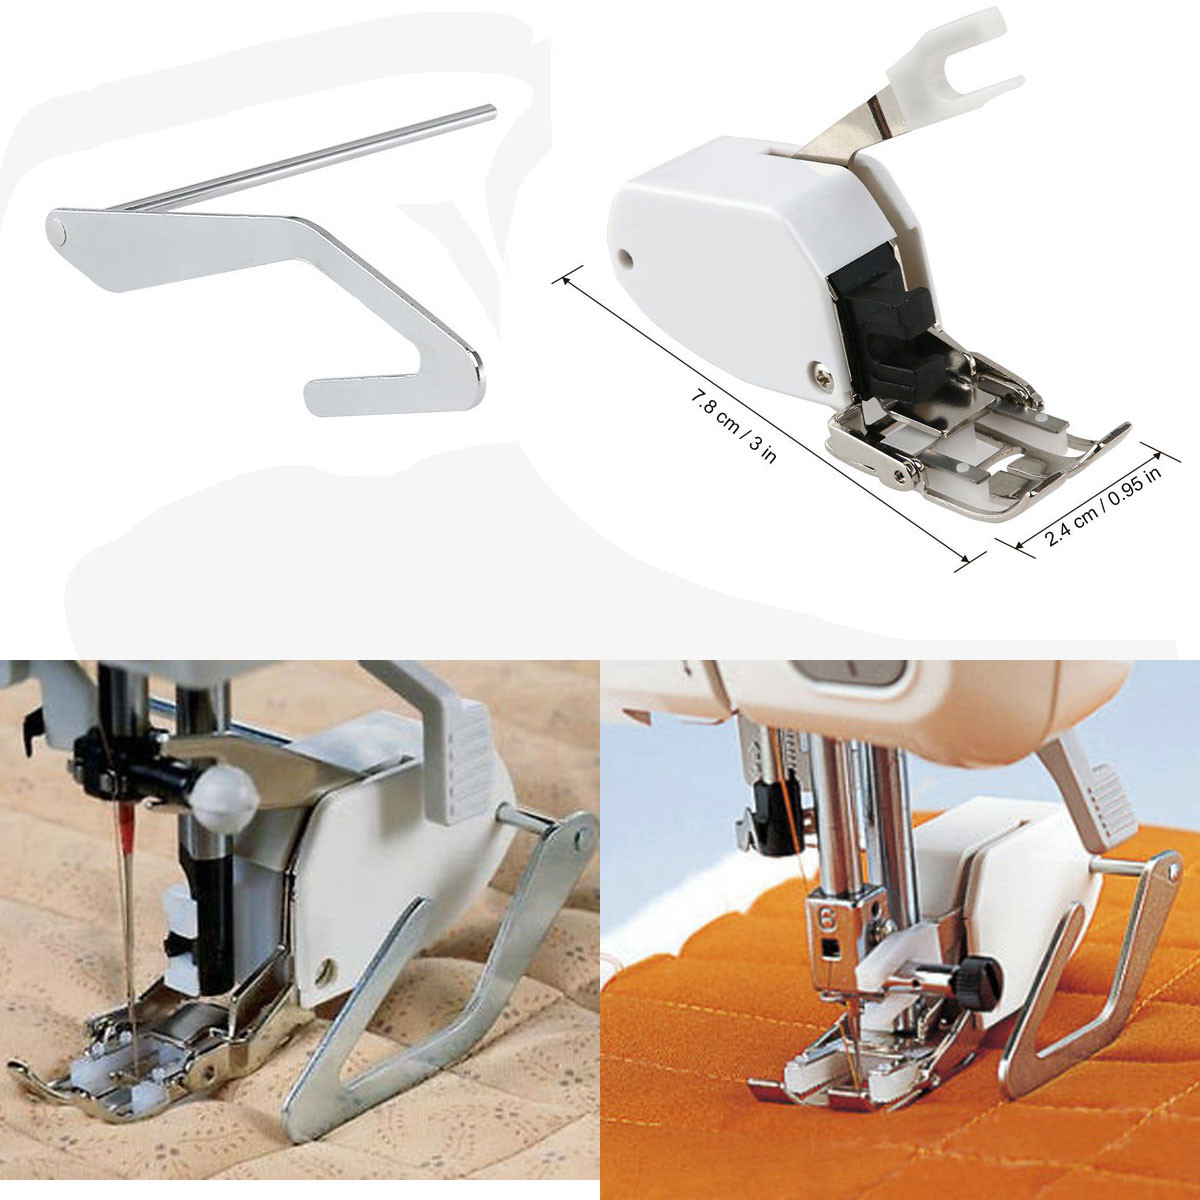 Beautiful Sewing Machine Screw On even Feed Walking Foot W Quilt Singer Sewing Machine Feet Of Amazing 50 Pics Singer Sewing Machine Feet